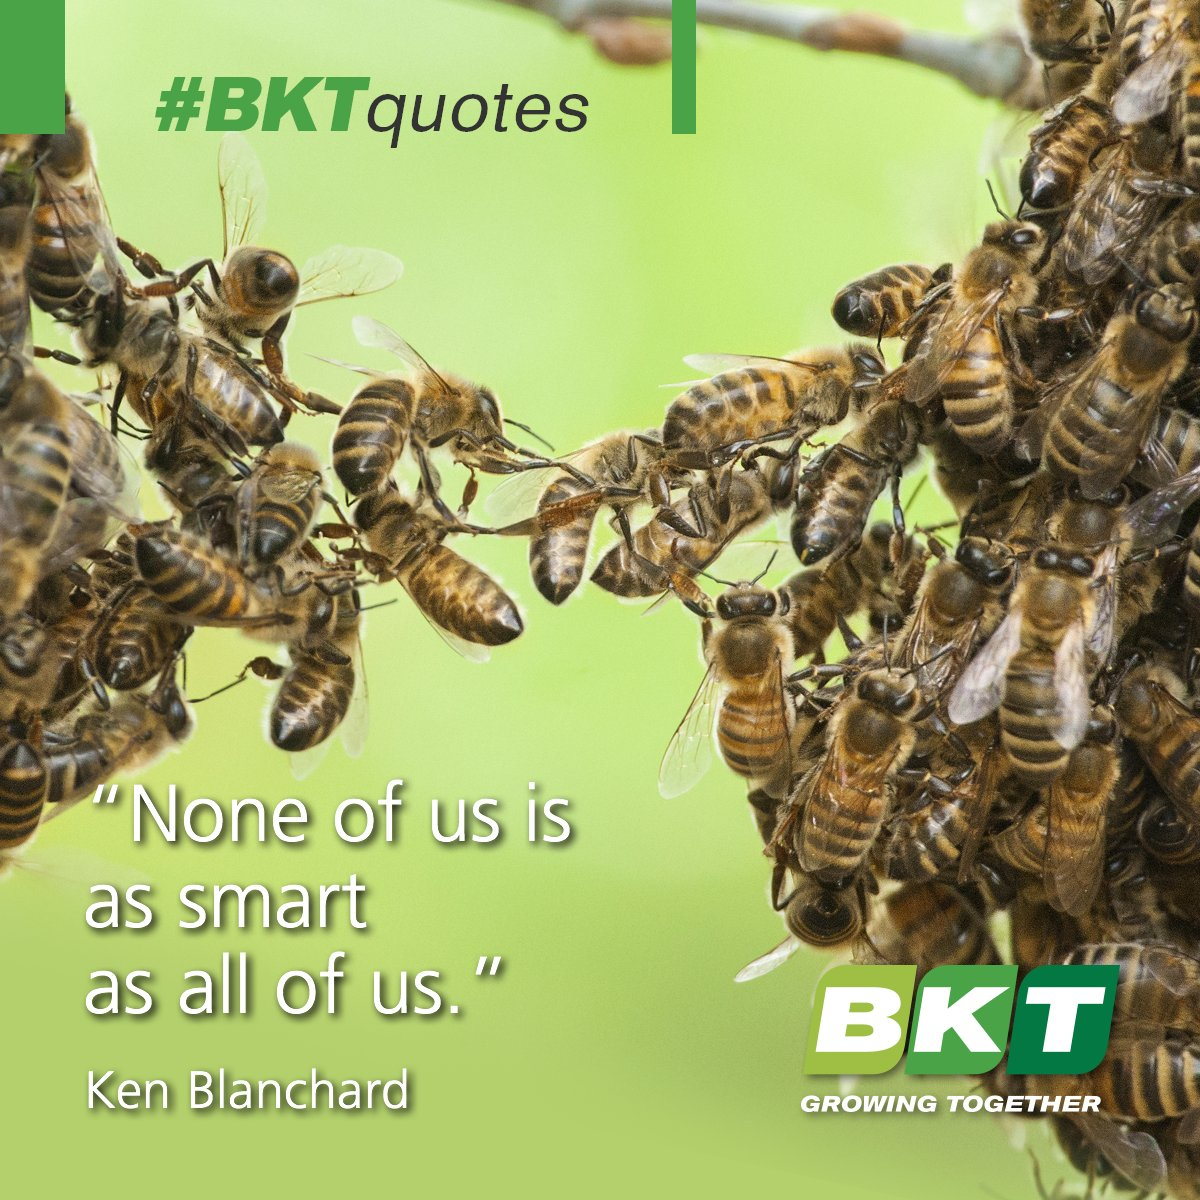 #GrowingTogether, Achieving More. #BKTquotes #quote #quoteoftheday https://t.co/IzW4jL2w8I